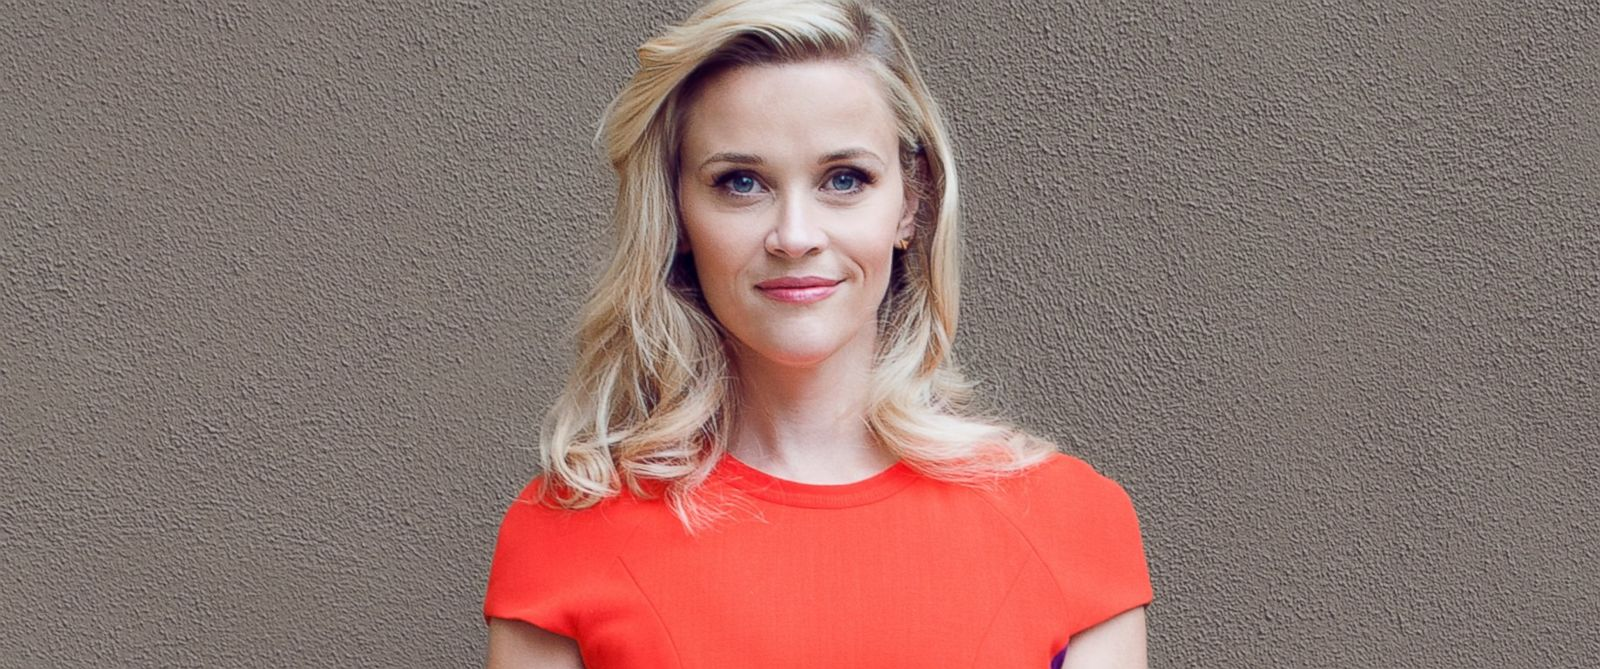 reese witherspoon википедия